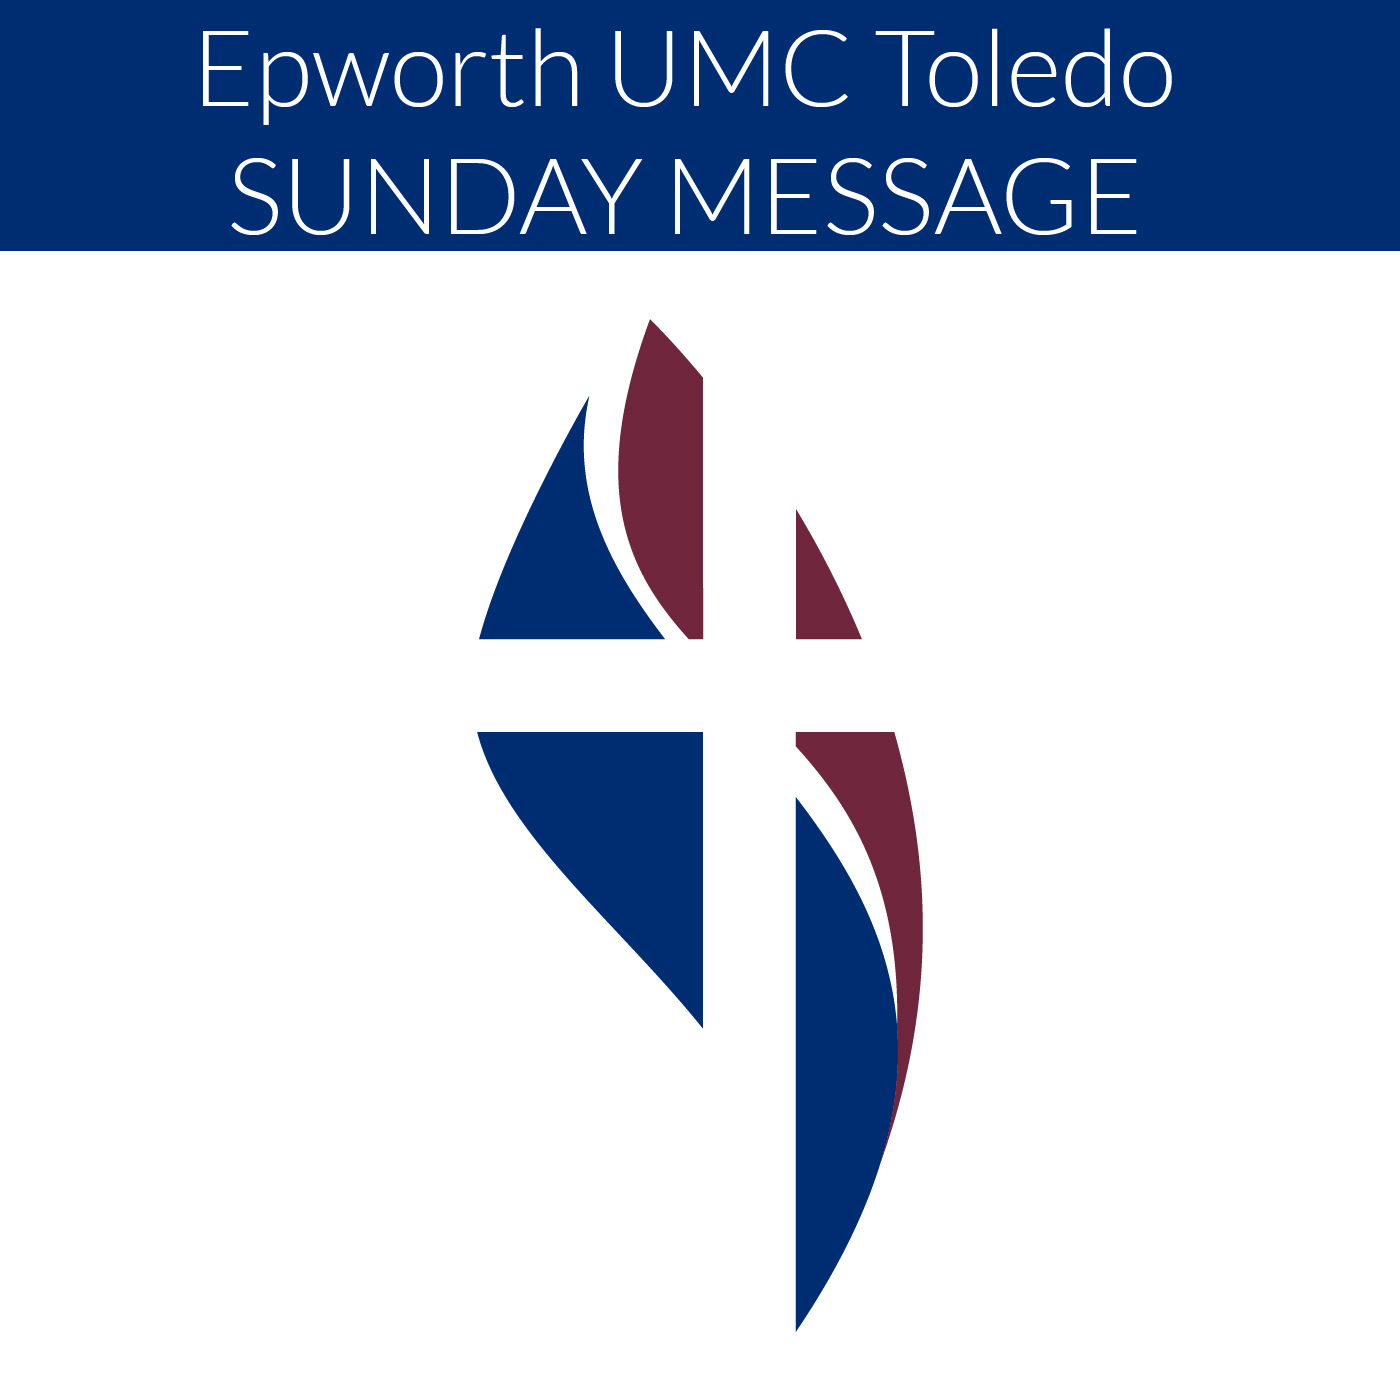 Epworth UMC Toledo